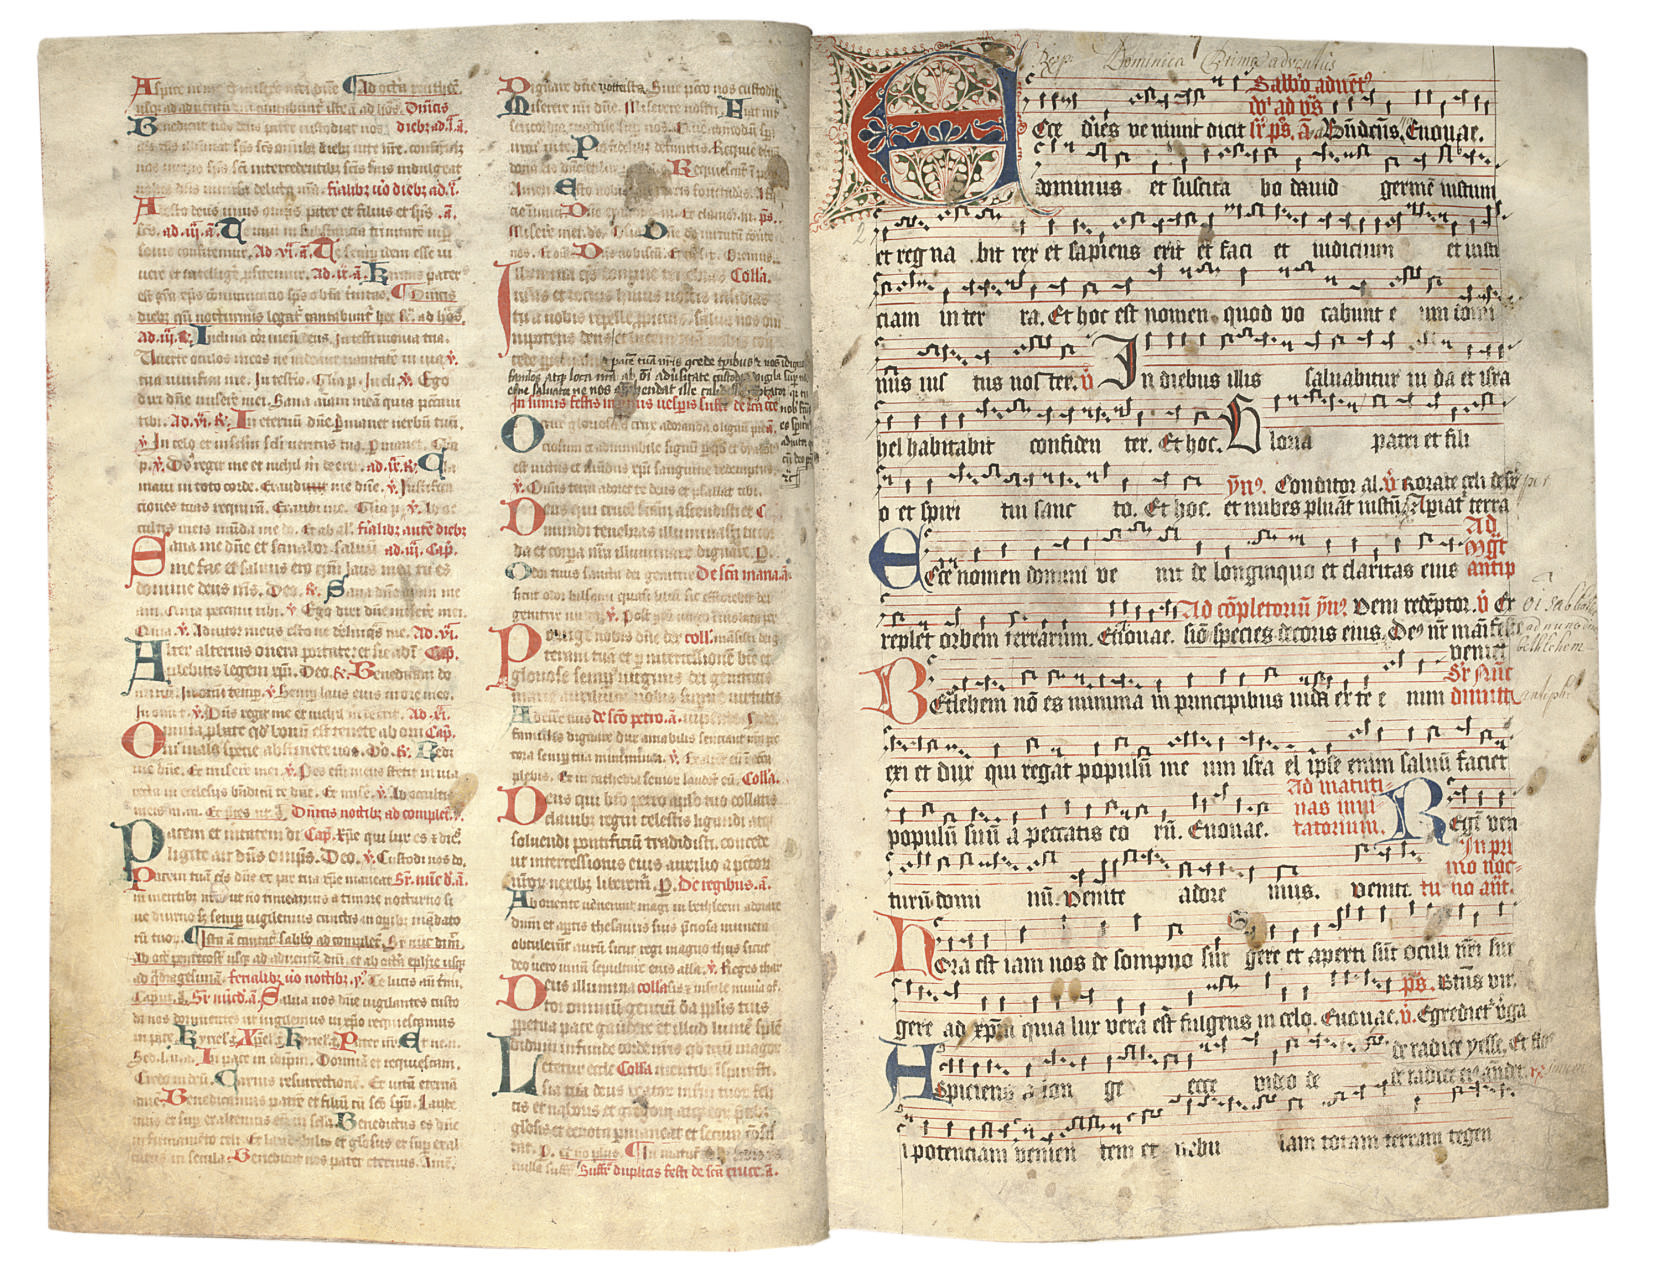 NOTED BREVIARY, in Latin, DECO